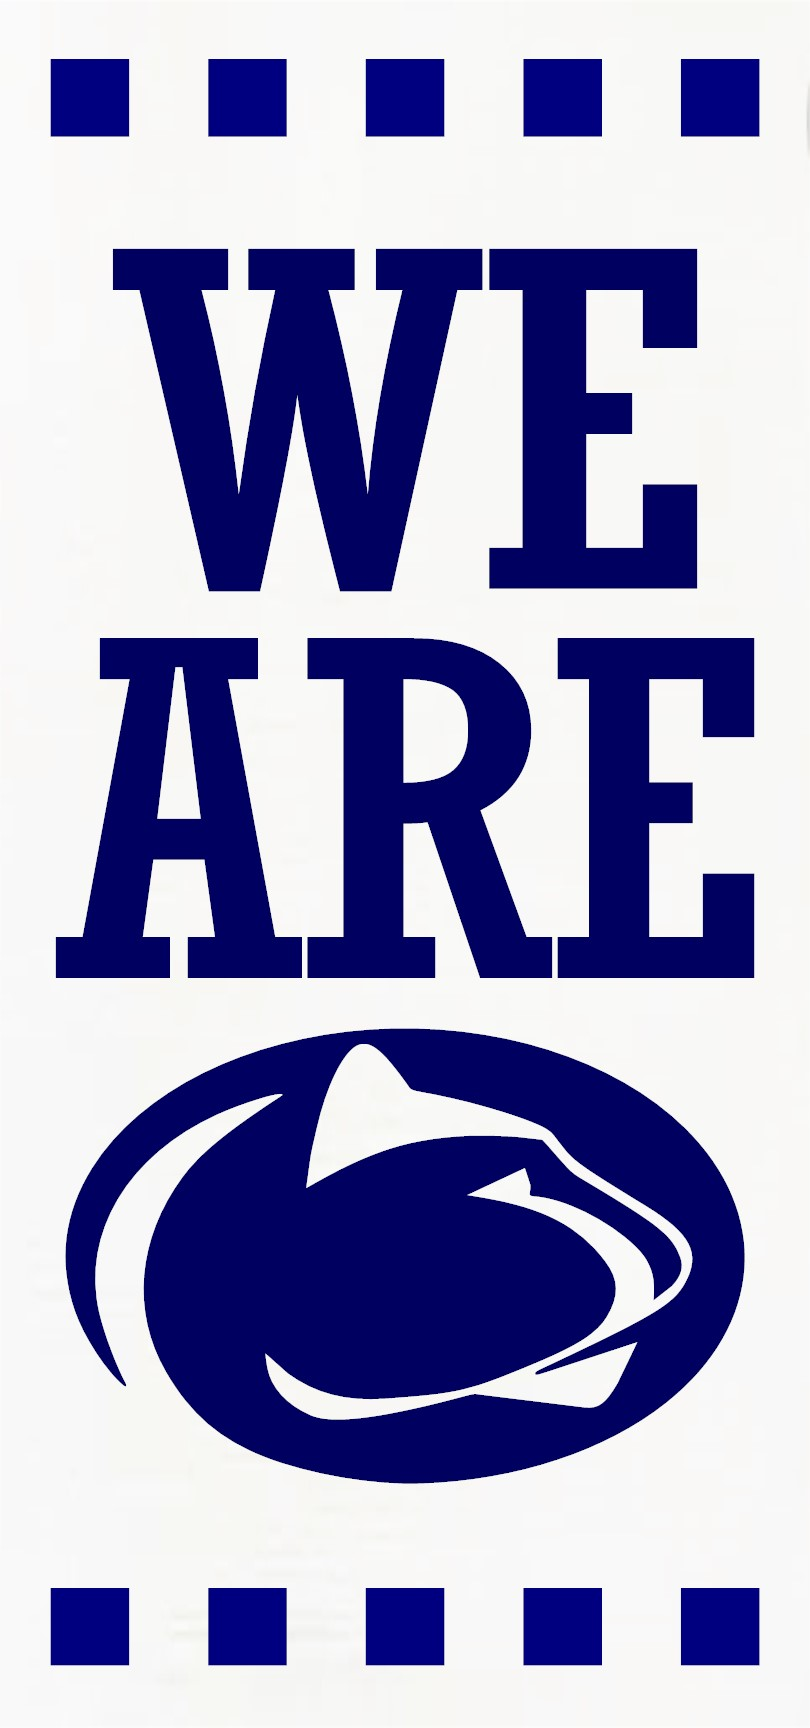 """""""We Are Penn State"""" DIY Wood Sign Kit (12inx24in)"""